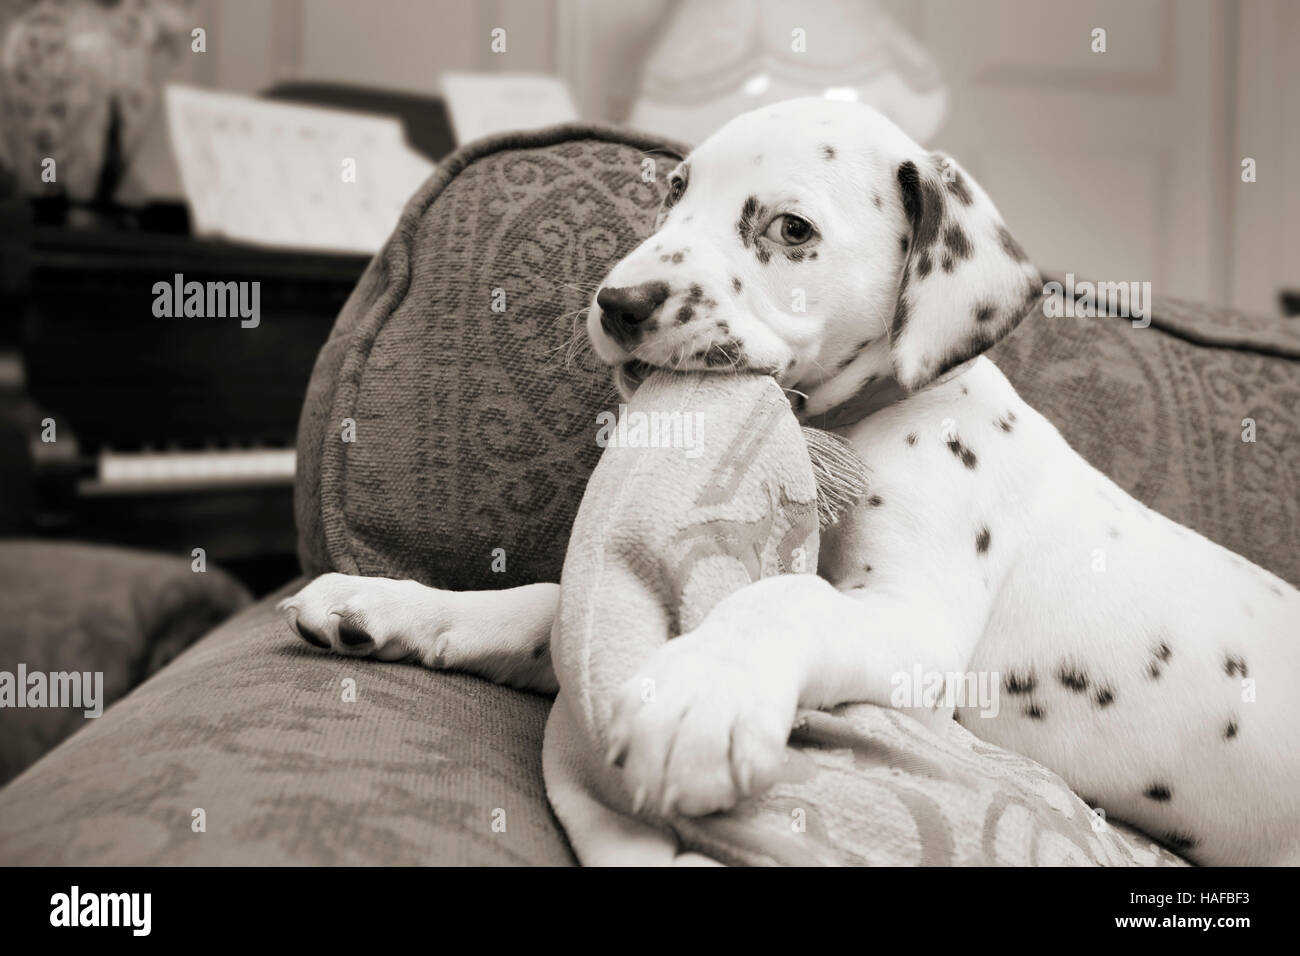 Cute Dalmatian Puppy Chewing on a Cushion - Stock Image